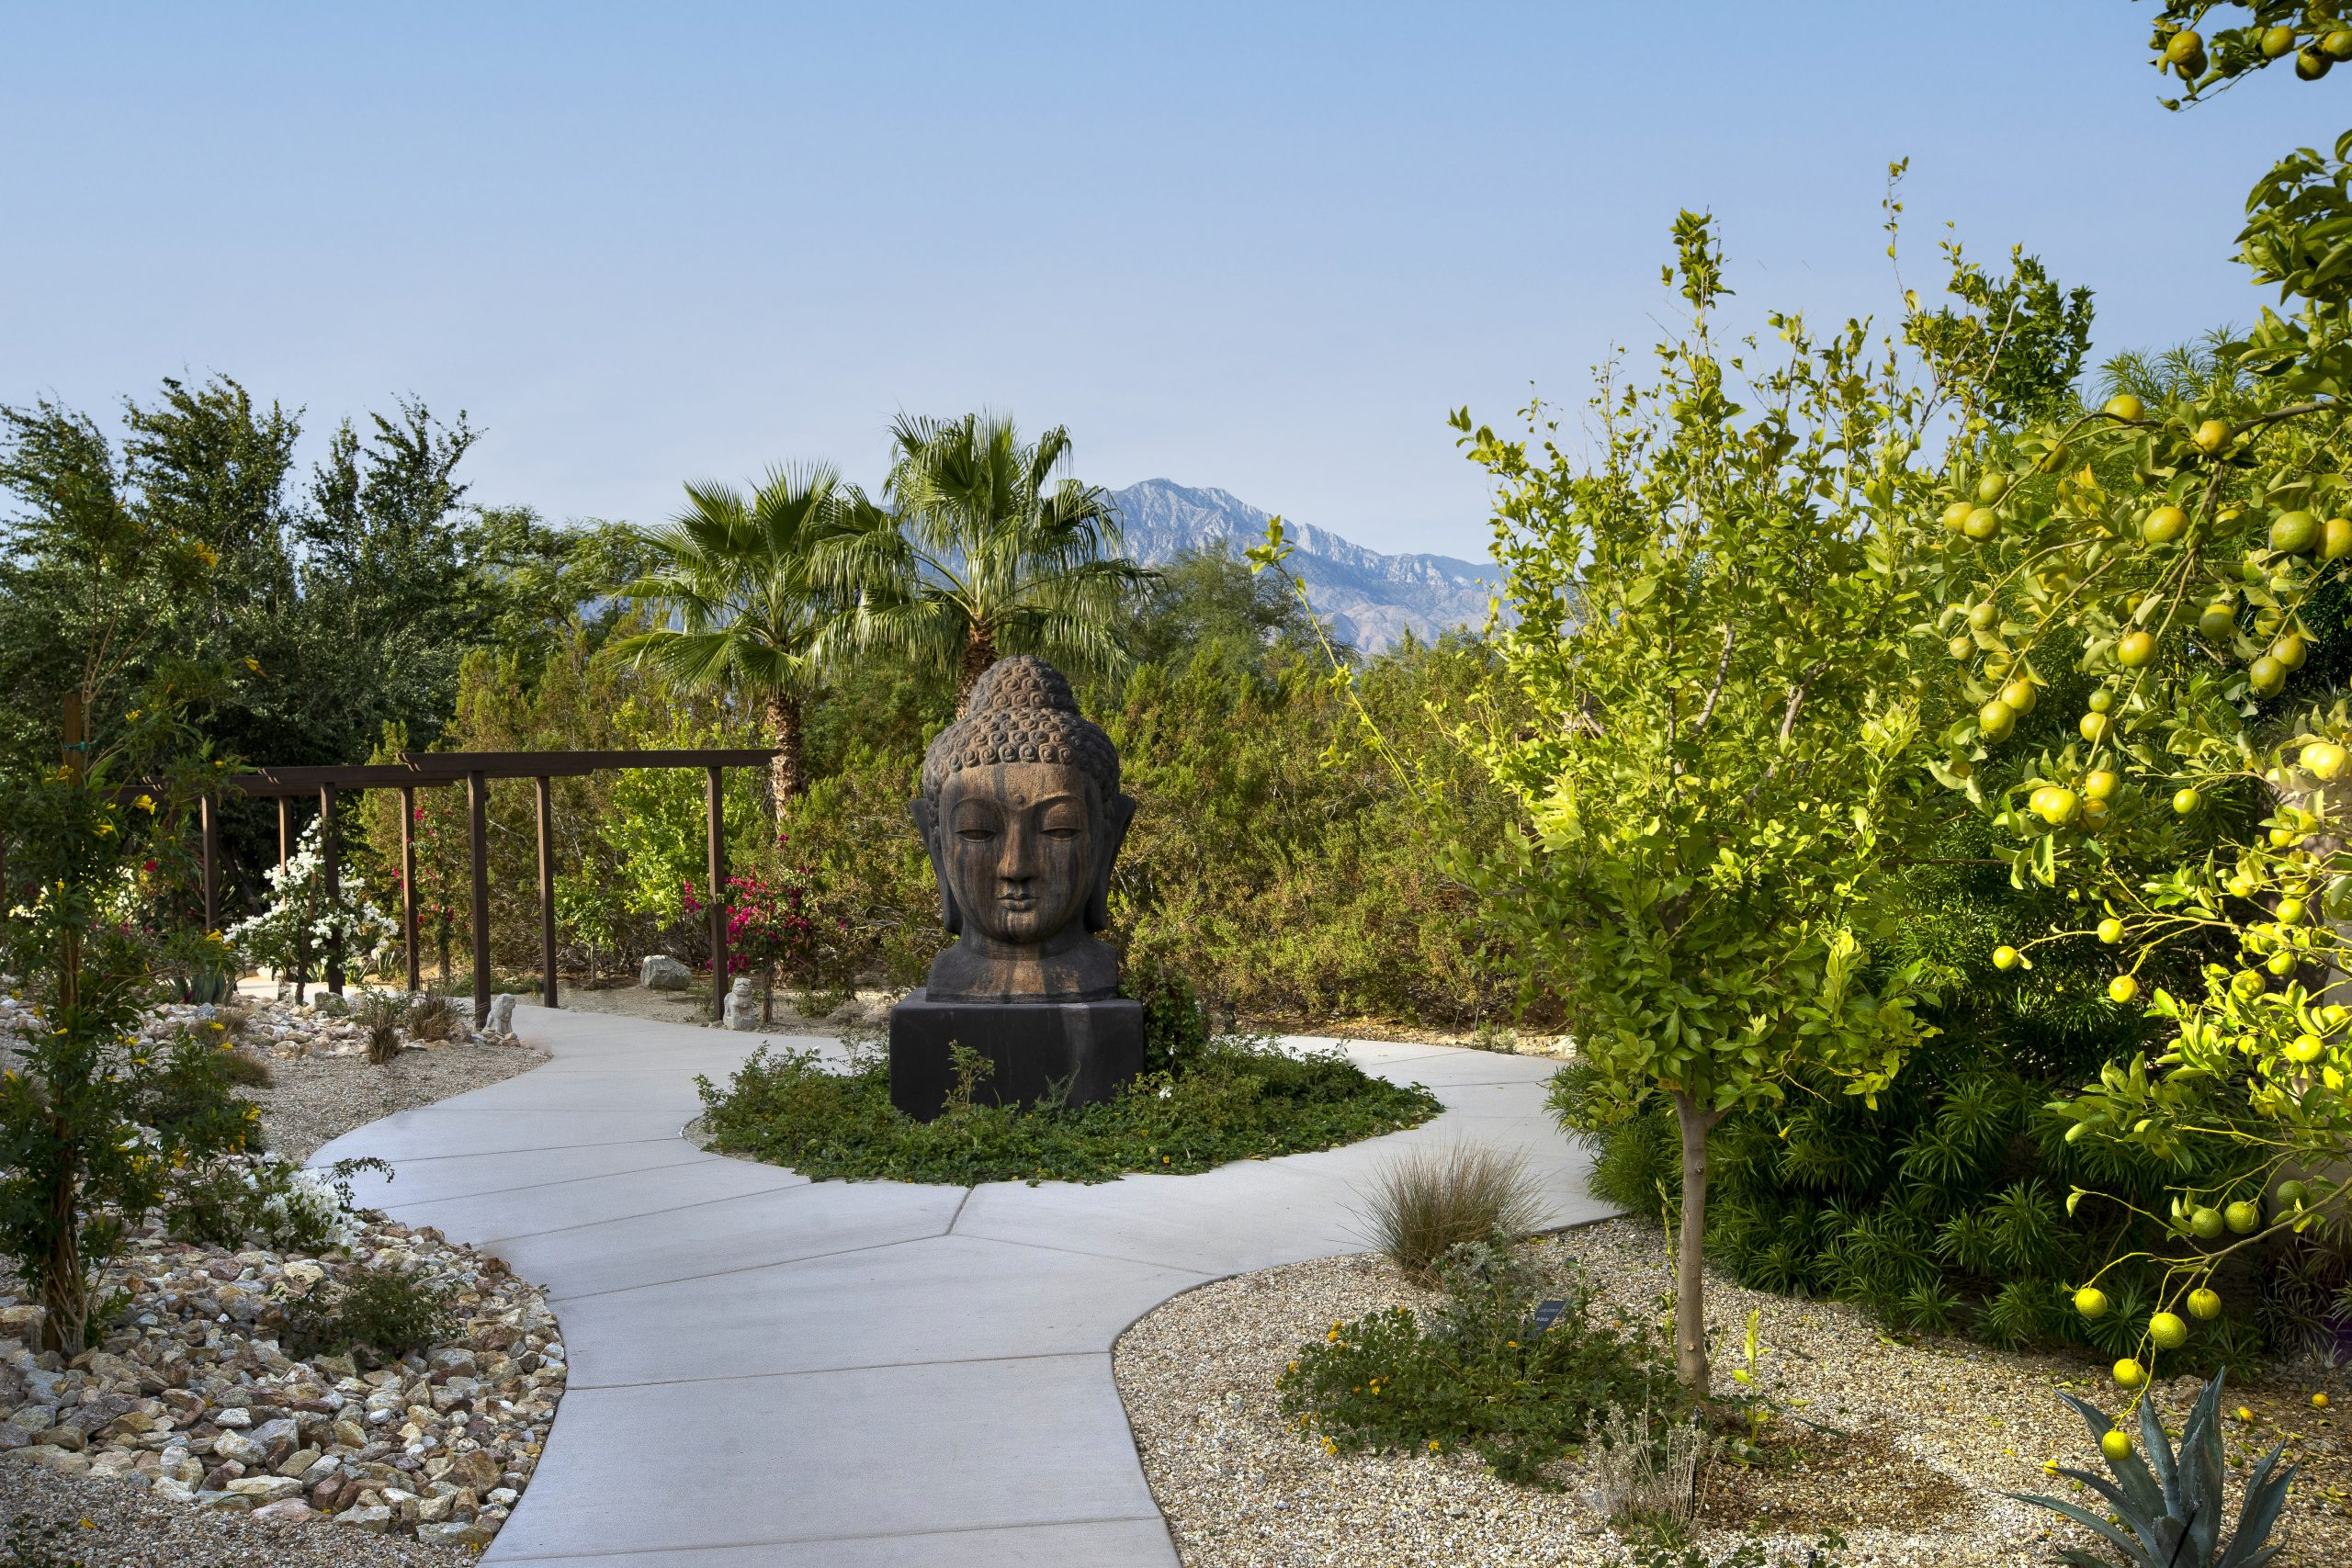 Looking for a relaxing vacation in California? Visit the We Care Spa in Desert Springs.